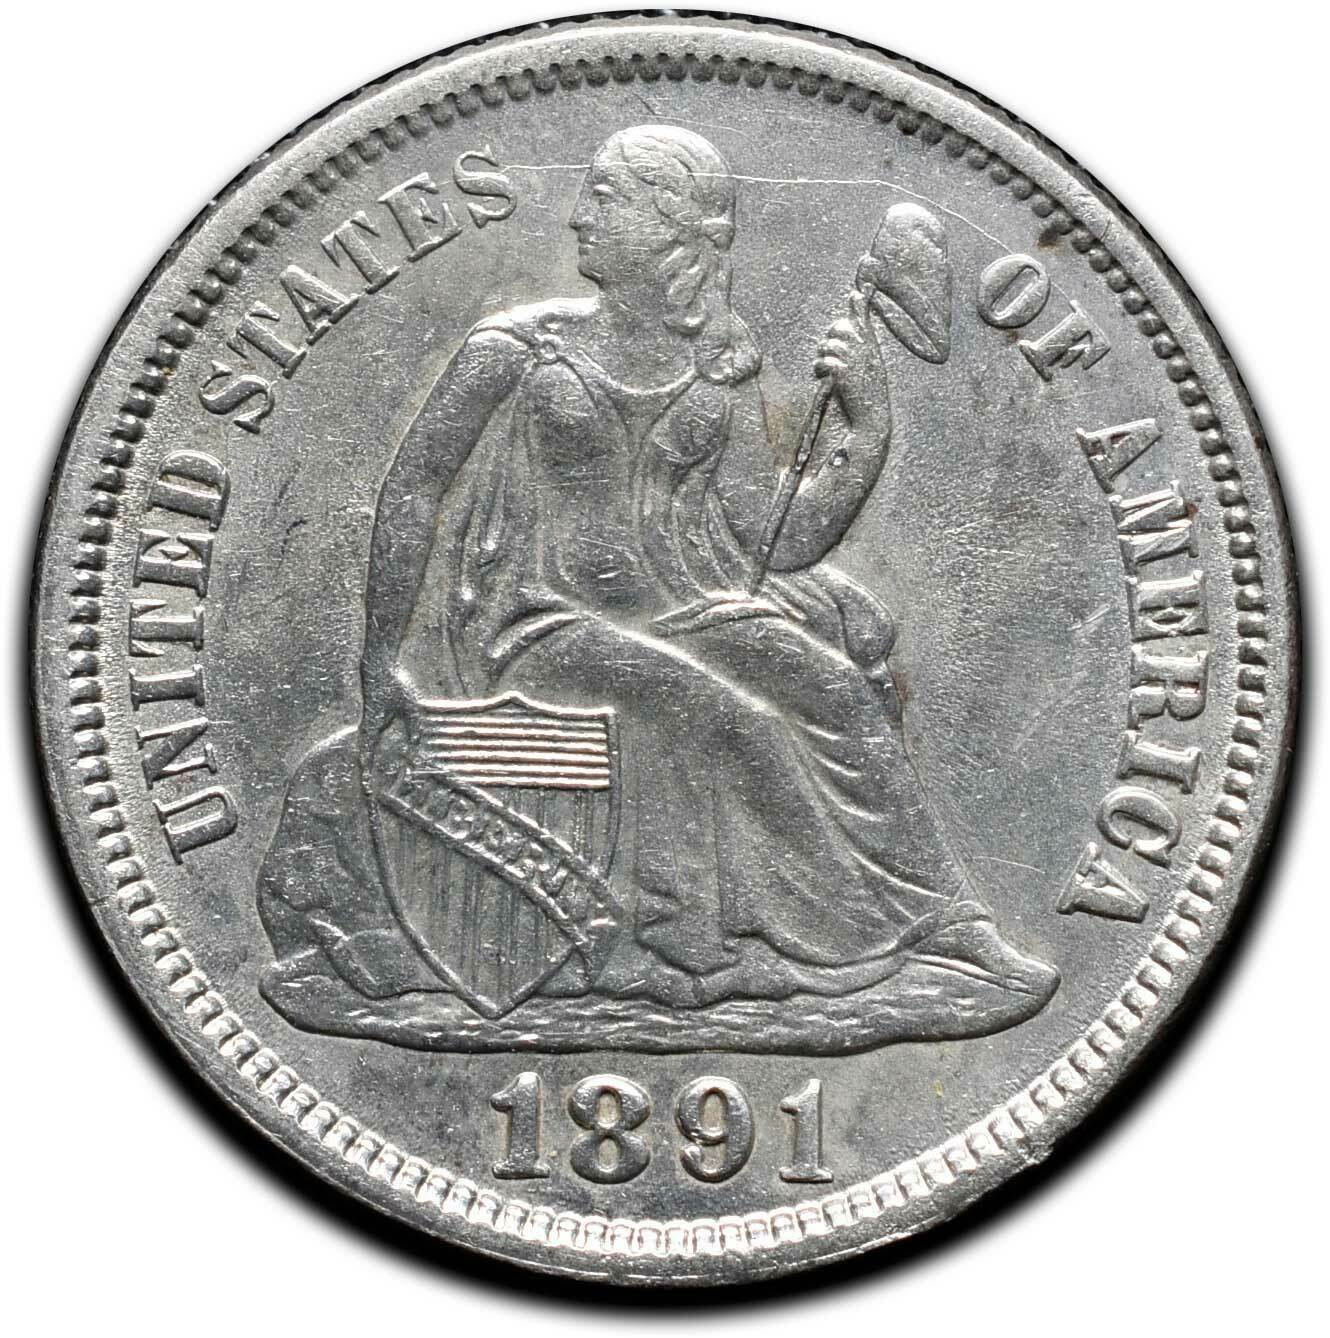 1891 Silver Seated Dime 10¢ Coin Lot# A 442